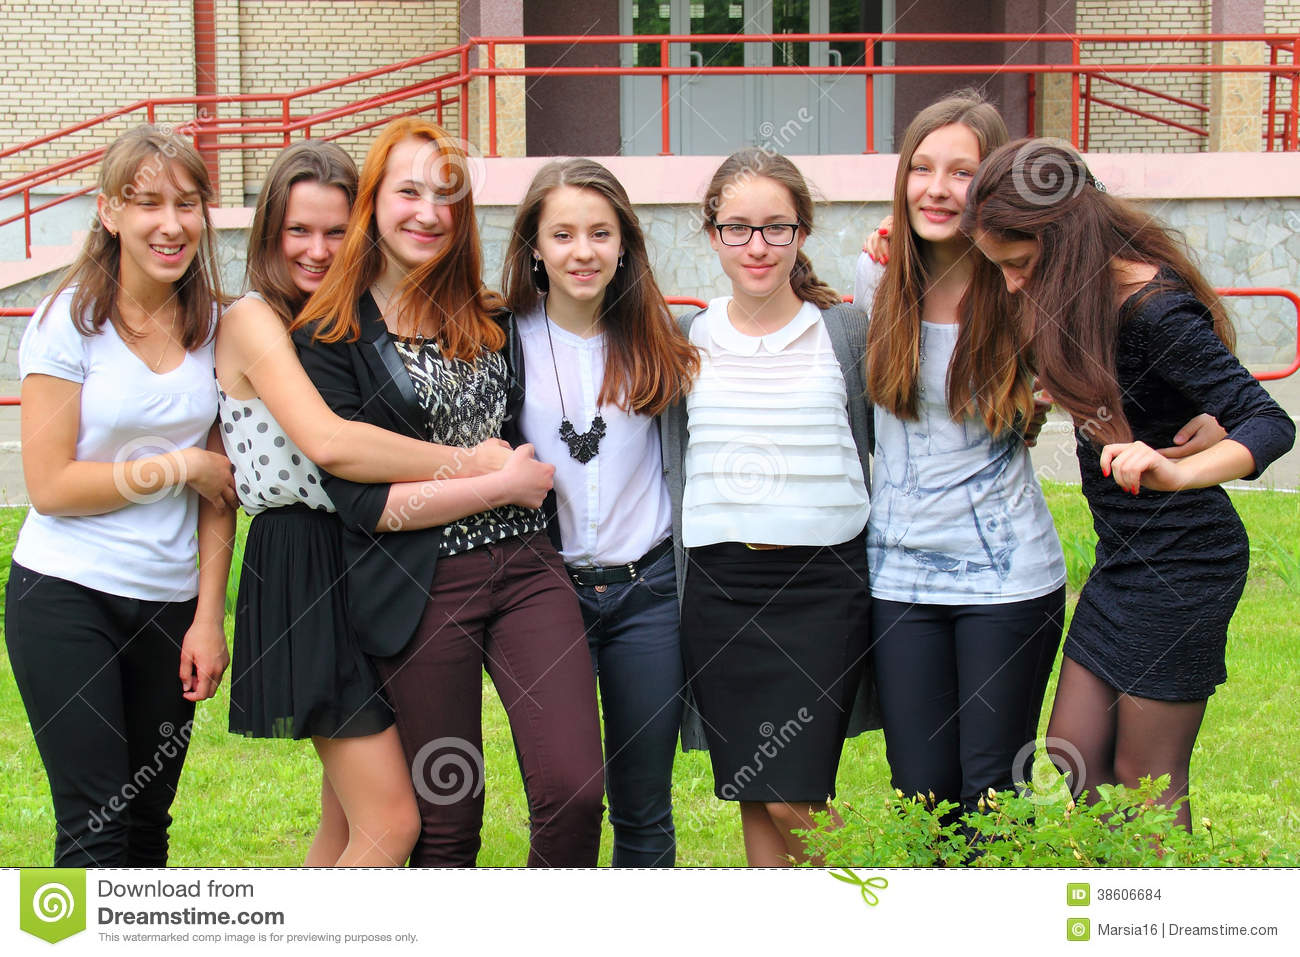 Smiling Teenage Girls front of the School